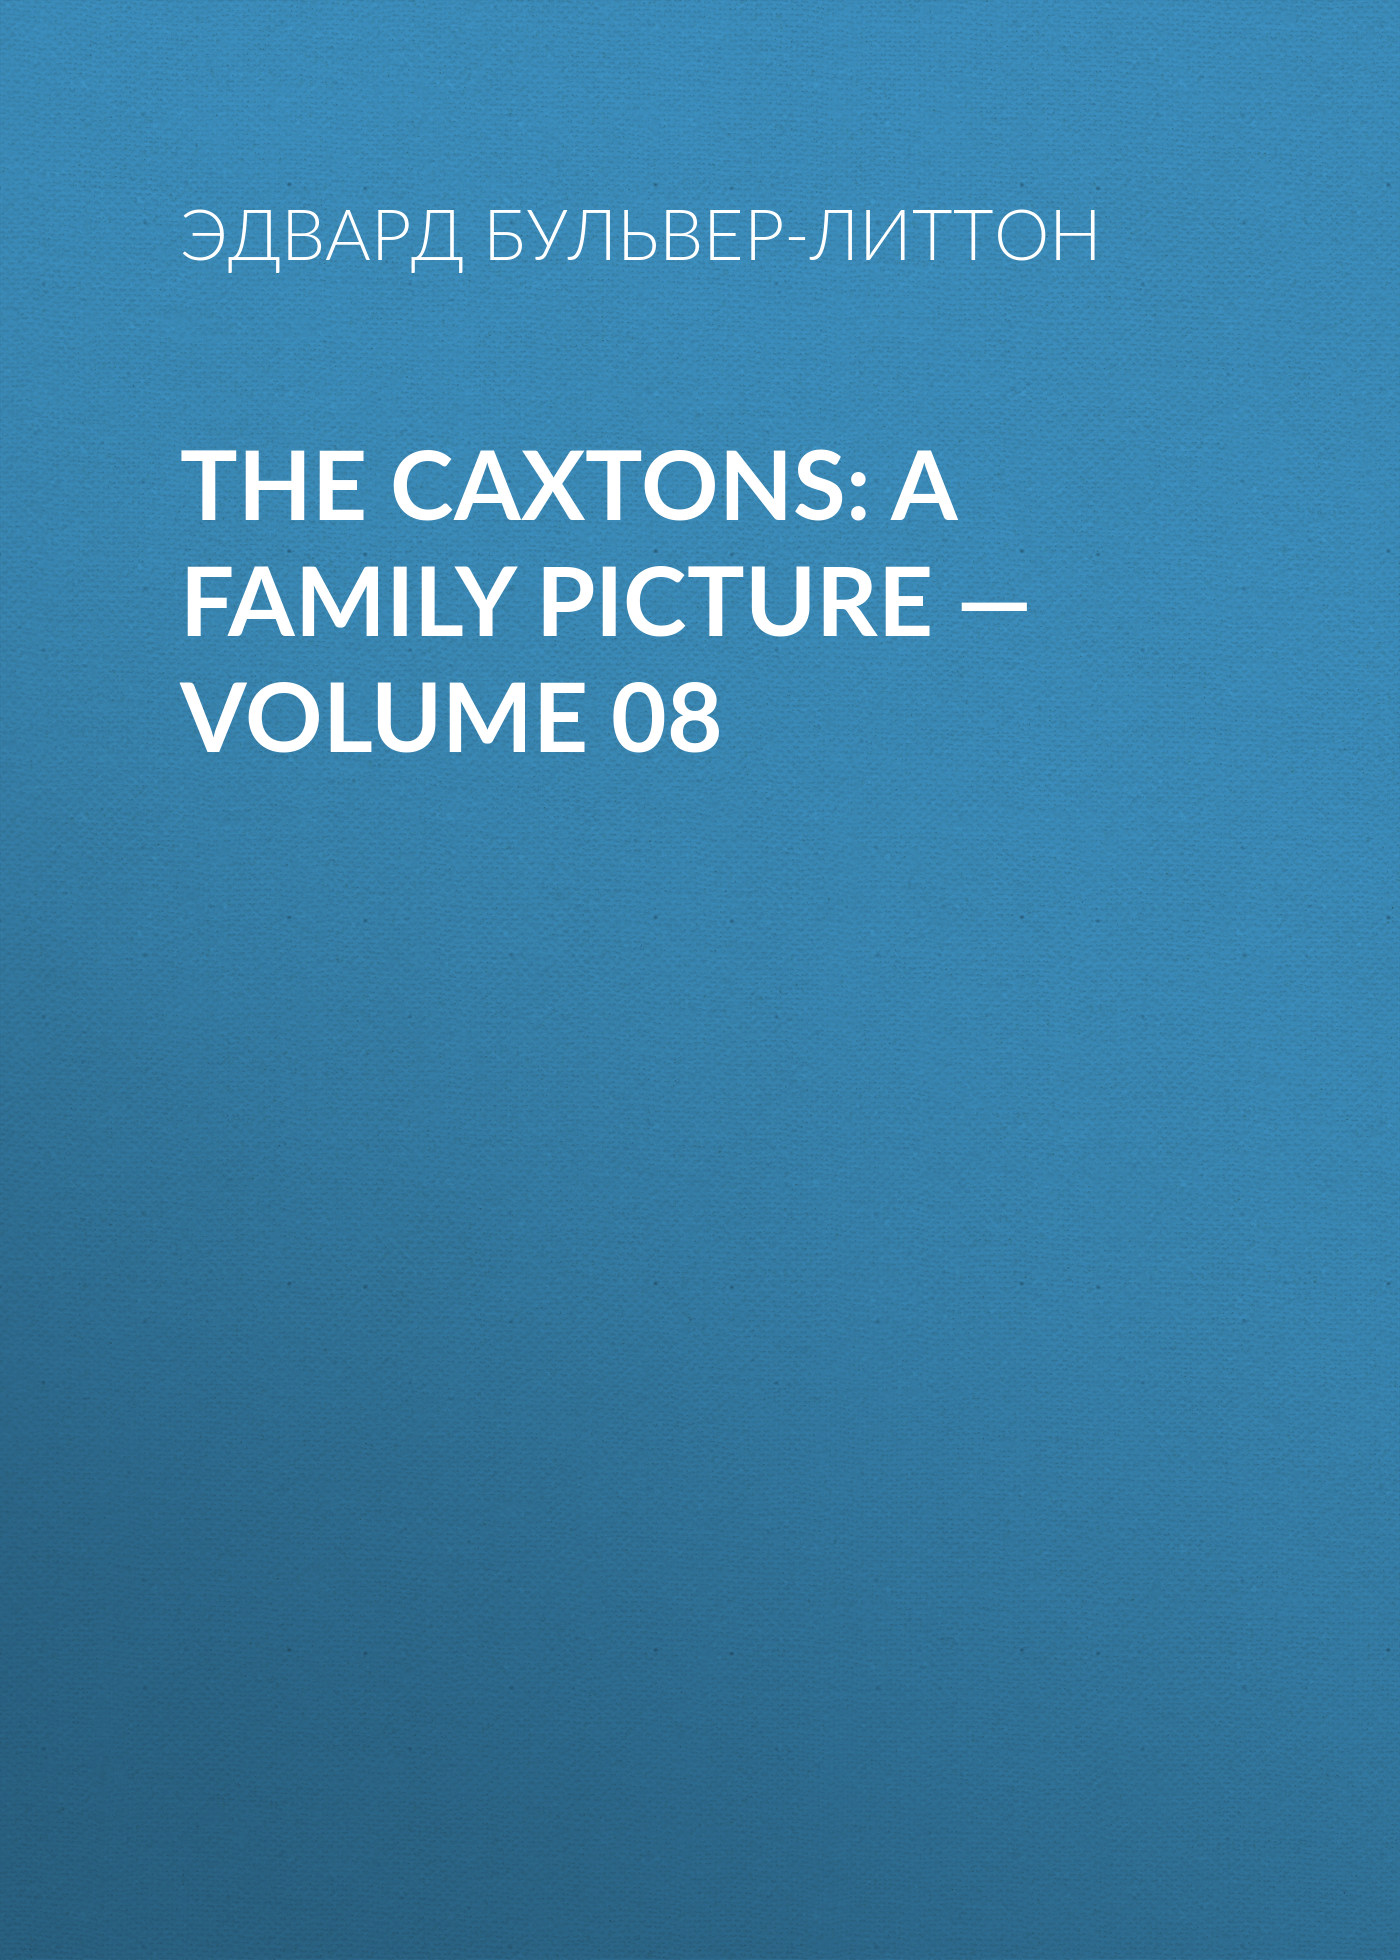 The Caxtons: A Family Picture — Volume 08